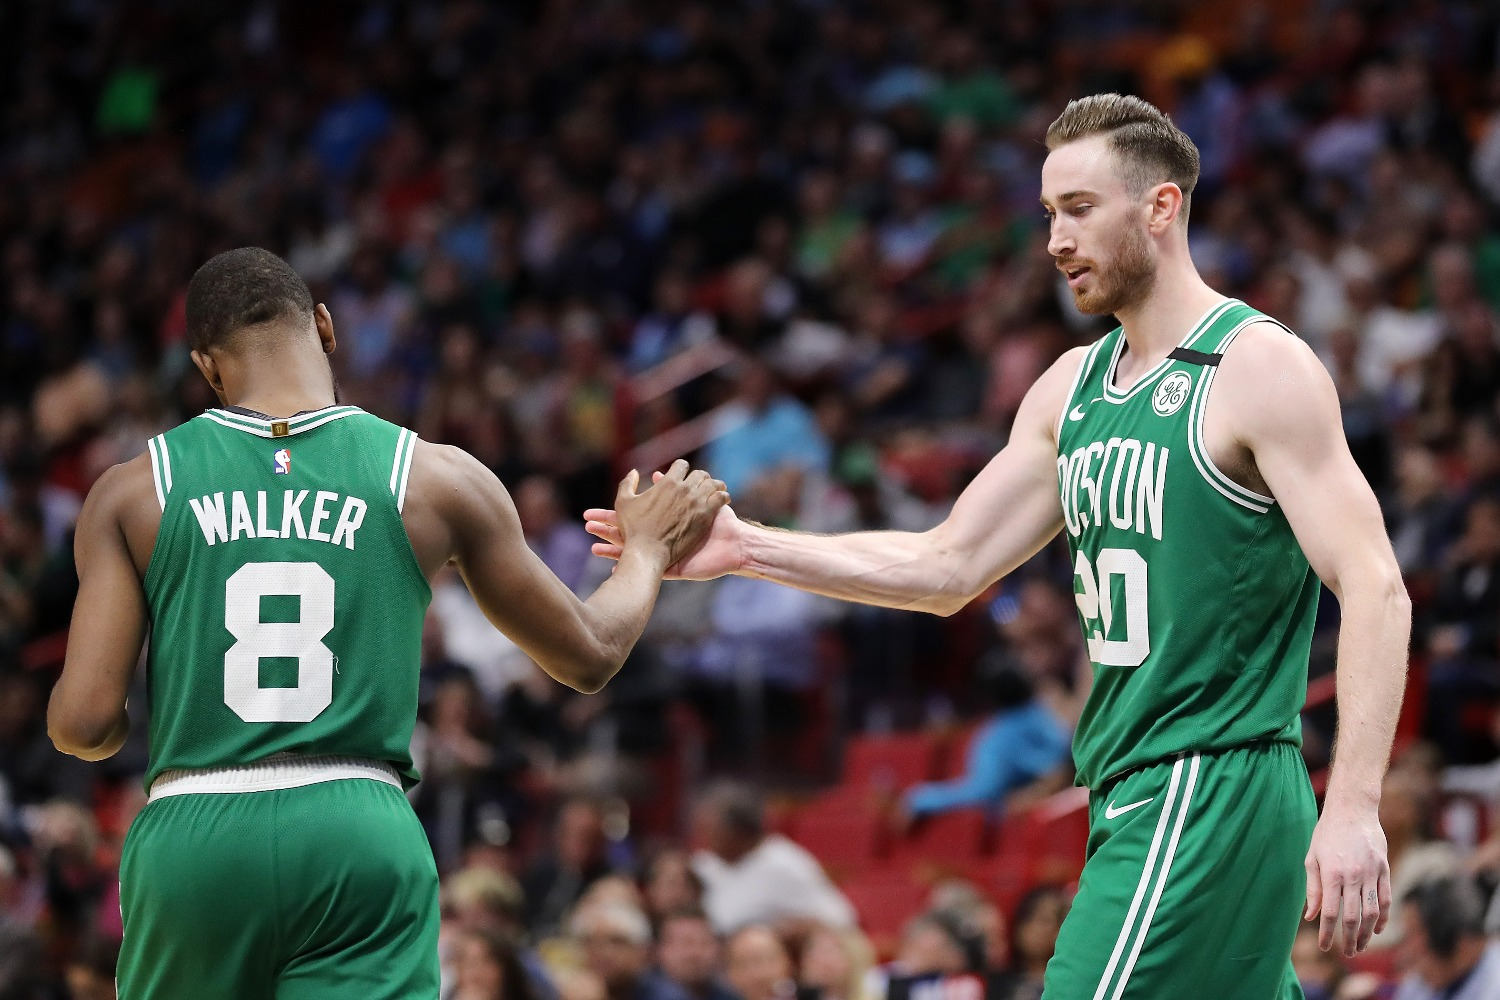 The Boston Celtics set a rare scoring record even with Kemba Walker sidelined with a knee injury.